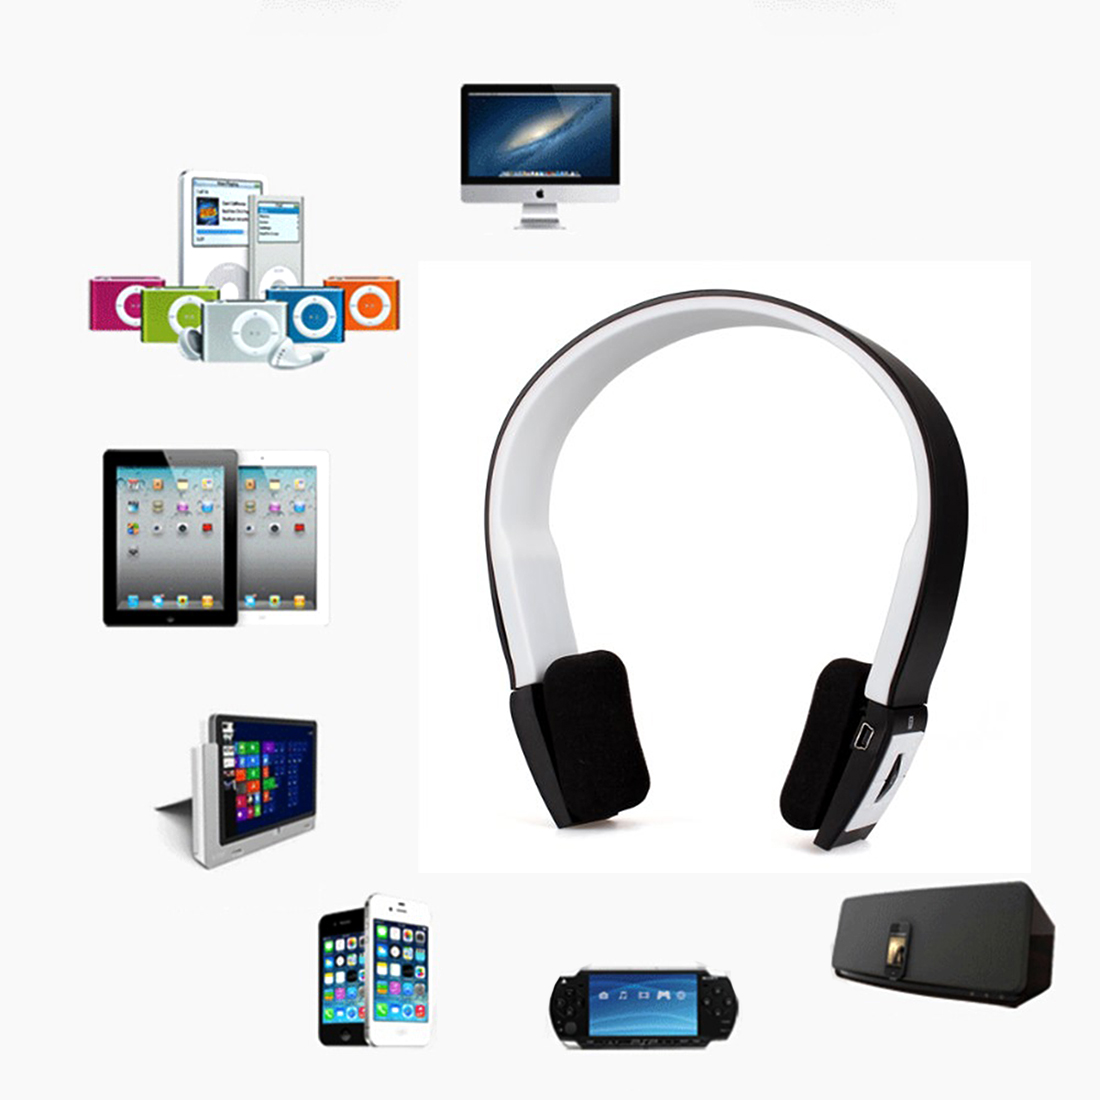 New Wireless Bluetooth Headphones Sports Stereo Headset Headphone +Mic for iPhone Mobile Phones Notebooks for Samsung Wholesale new wireless bluetooth headphones sports stereo headset headphone mic for iphone mobile phones notebooks for samsung wholesale